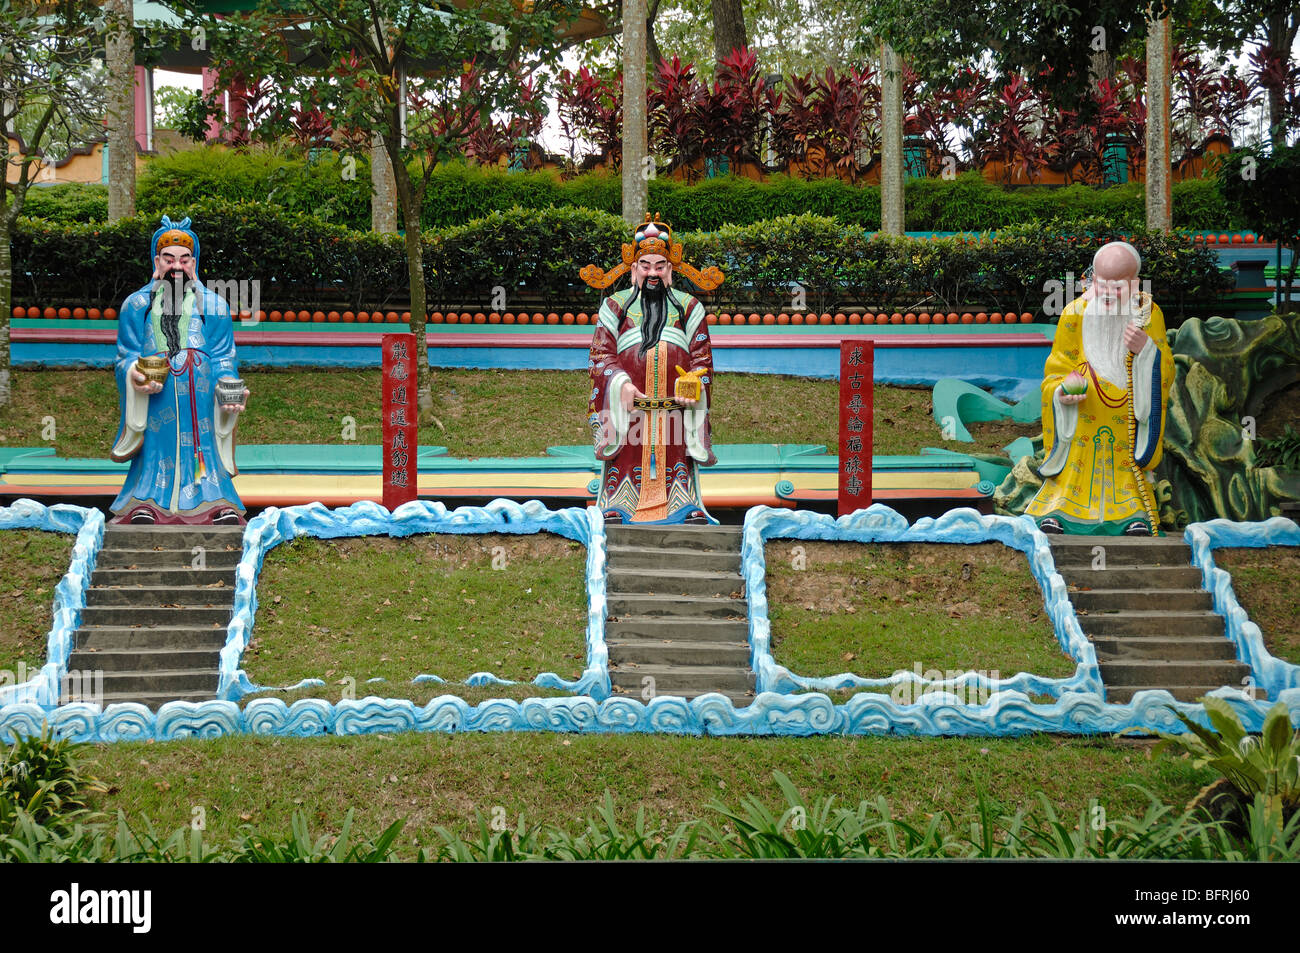 Fu, Lu & Shou, Chinese Gods or Deities of Good Fortune, Prosperity & Longevity, Tiger Balm Gardens Theme - Stock Image